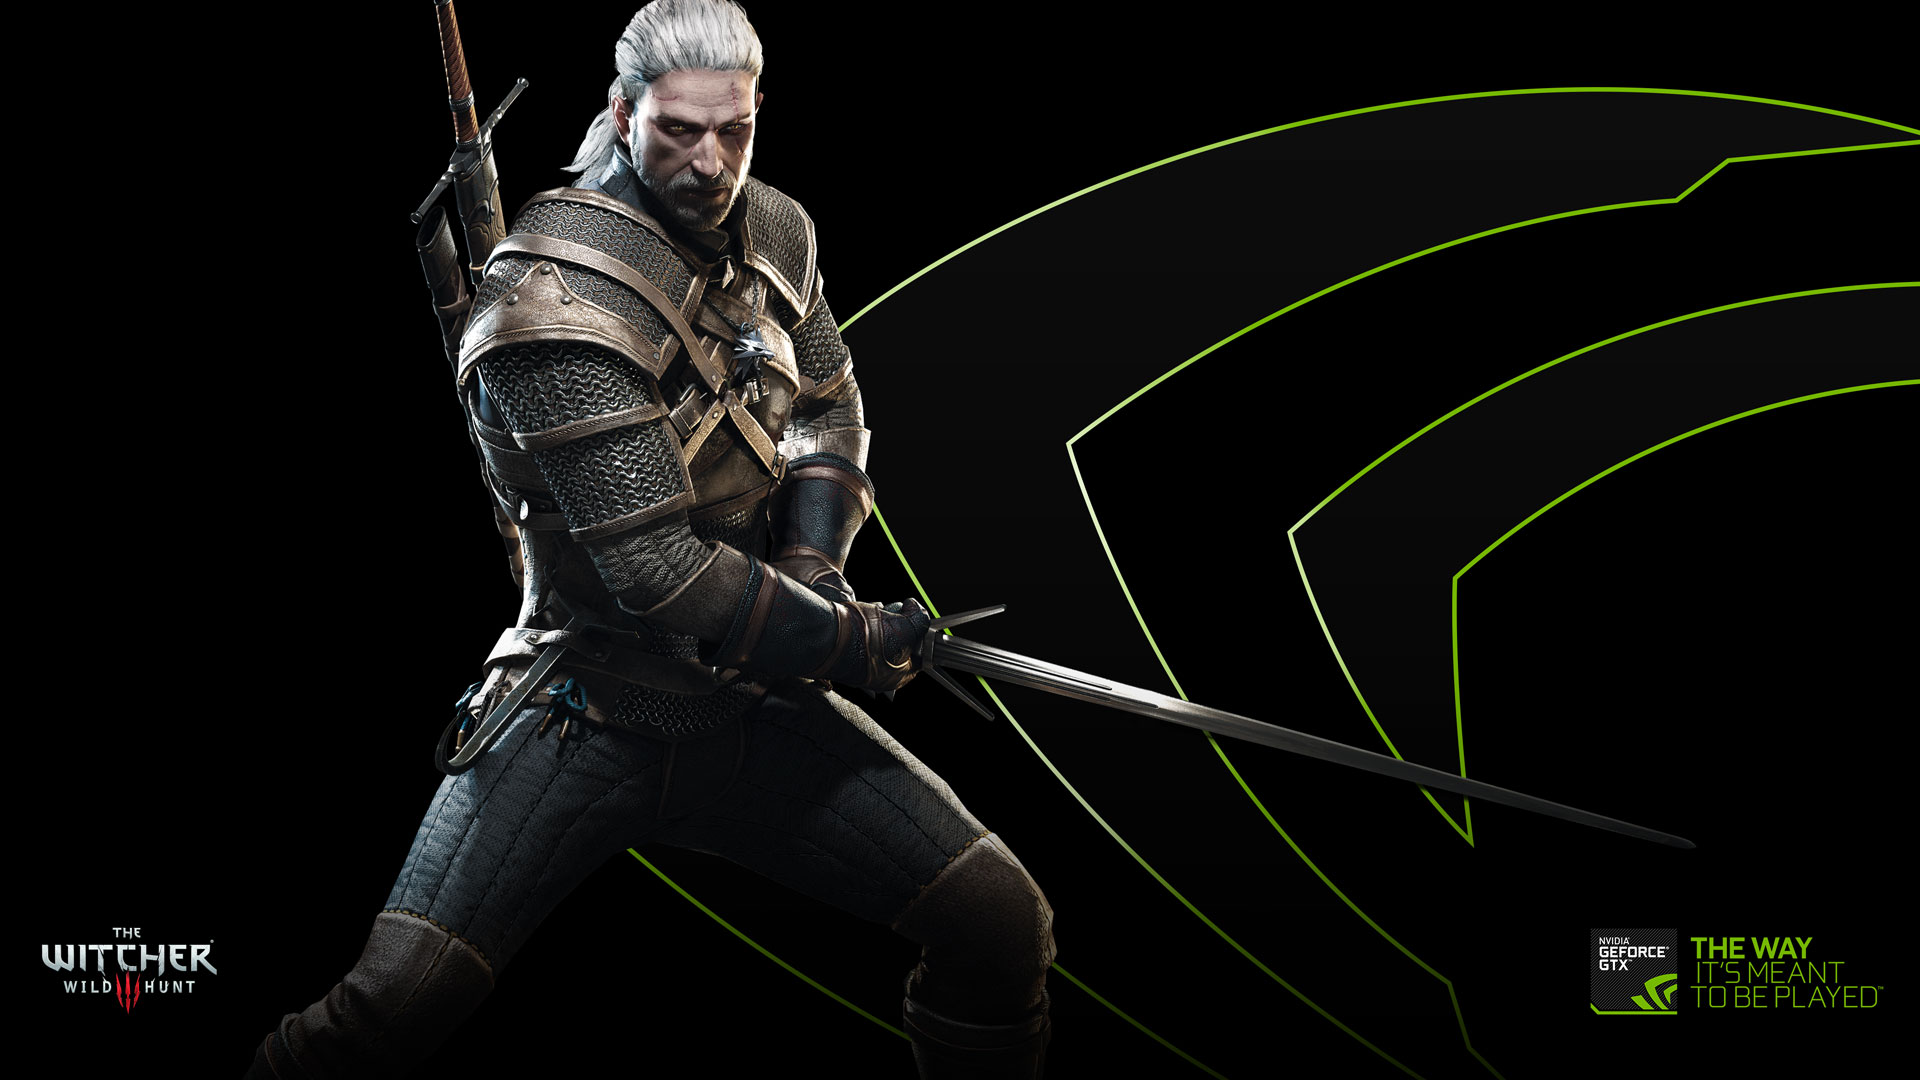 The Witcher Wild Hunt Hd Wallpapers Desktop Backgrounds Mobile 1920x1080